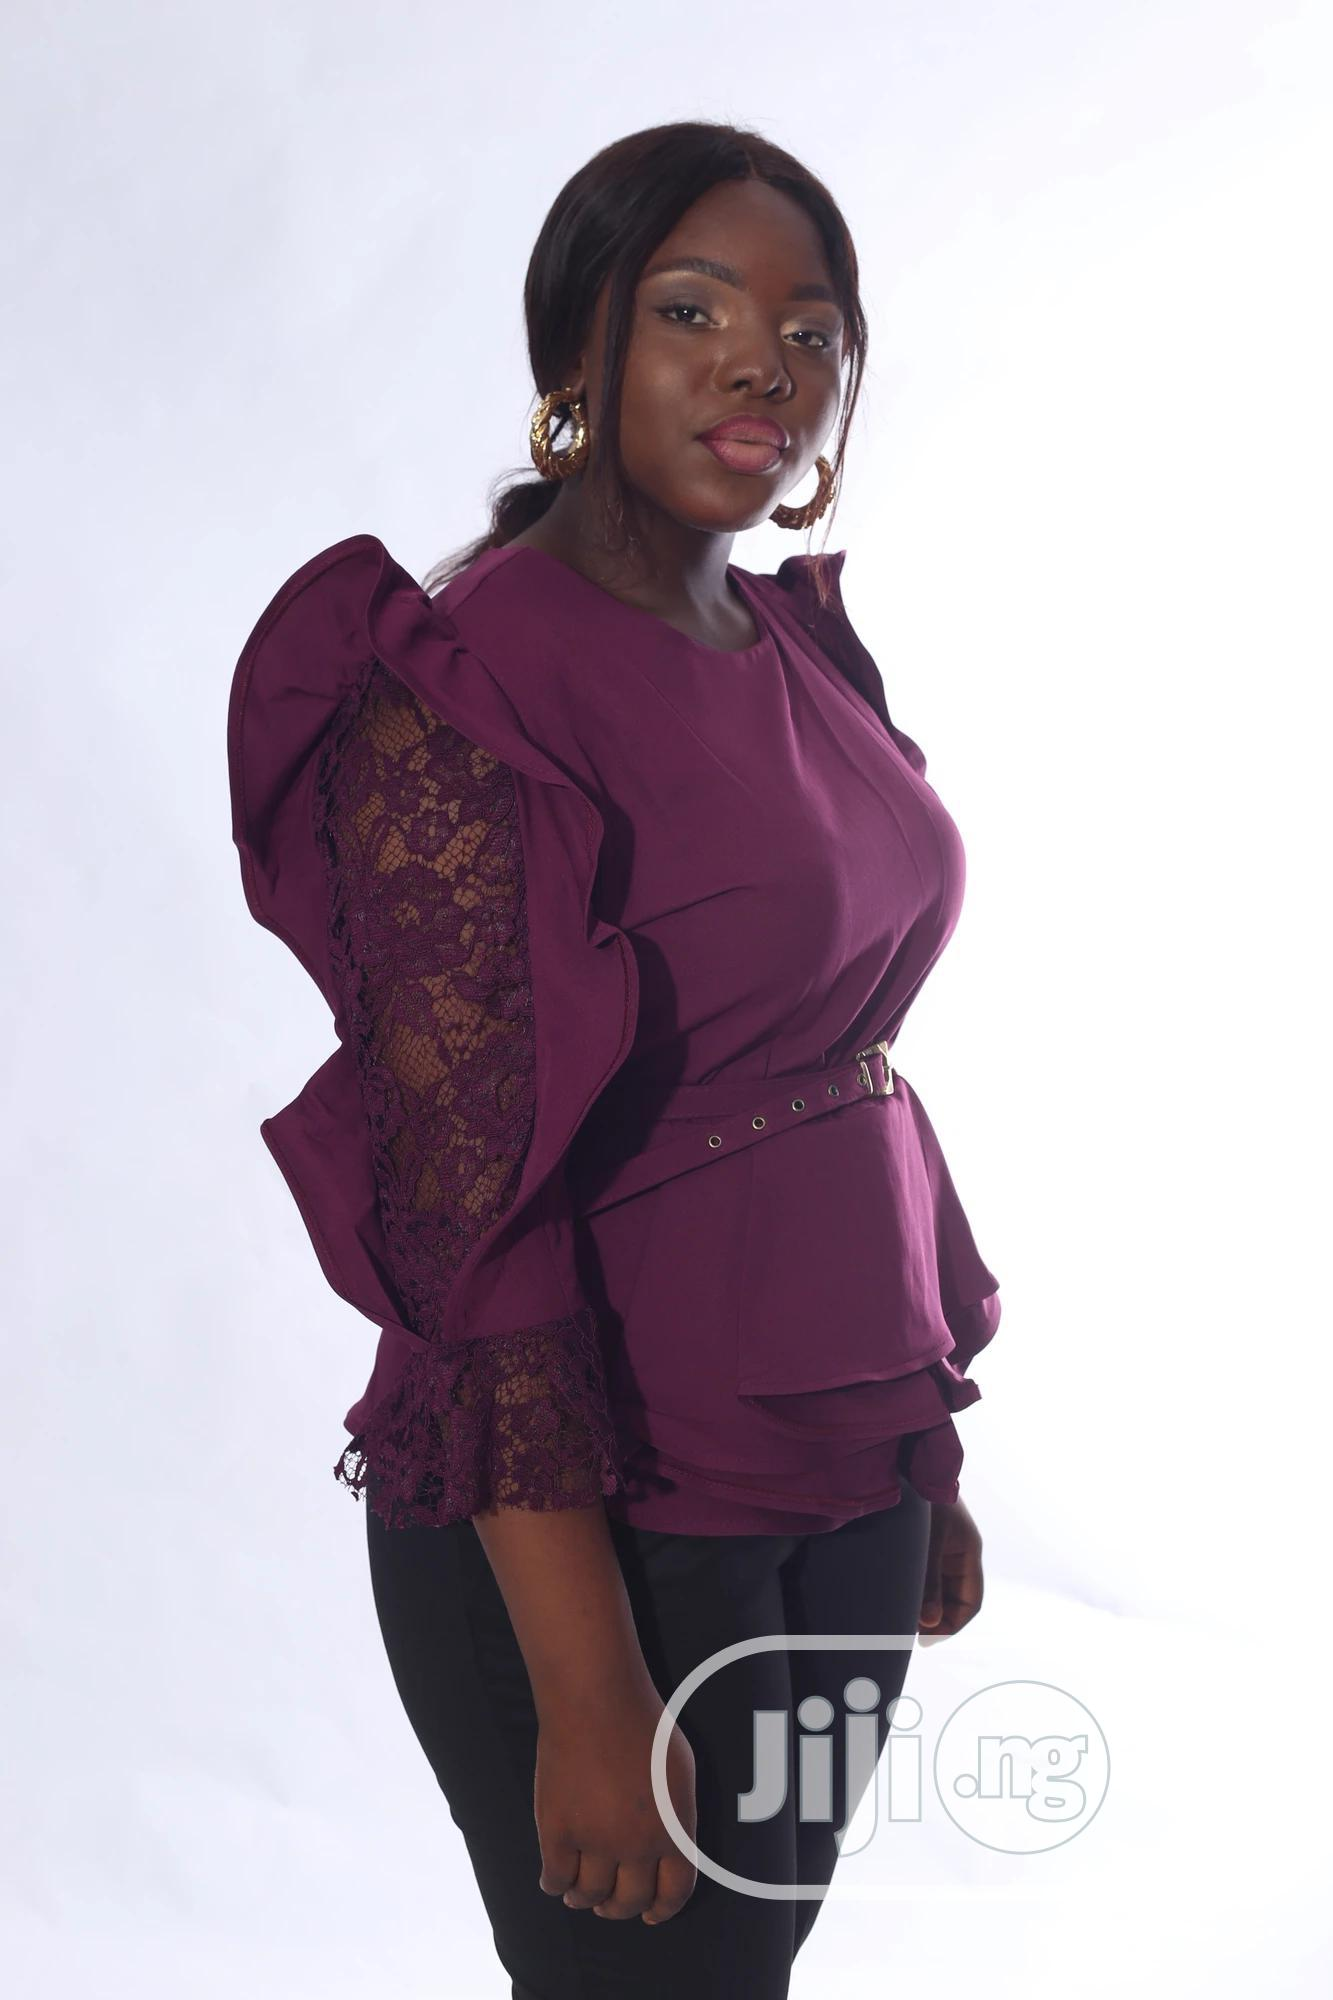 Rossland Female Tops   Clothing for sale in Alimosho, Lagos State, Nigeria